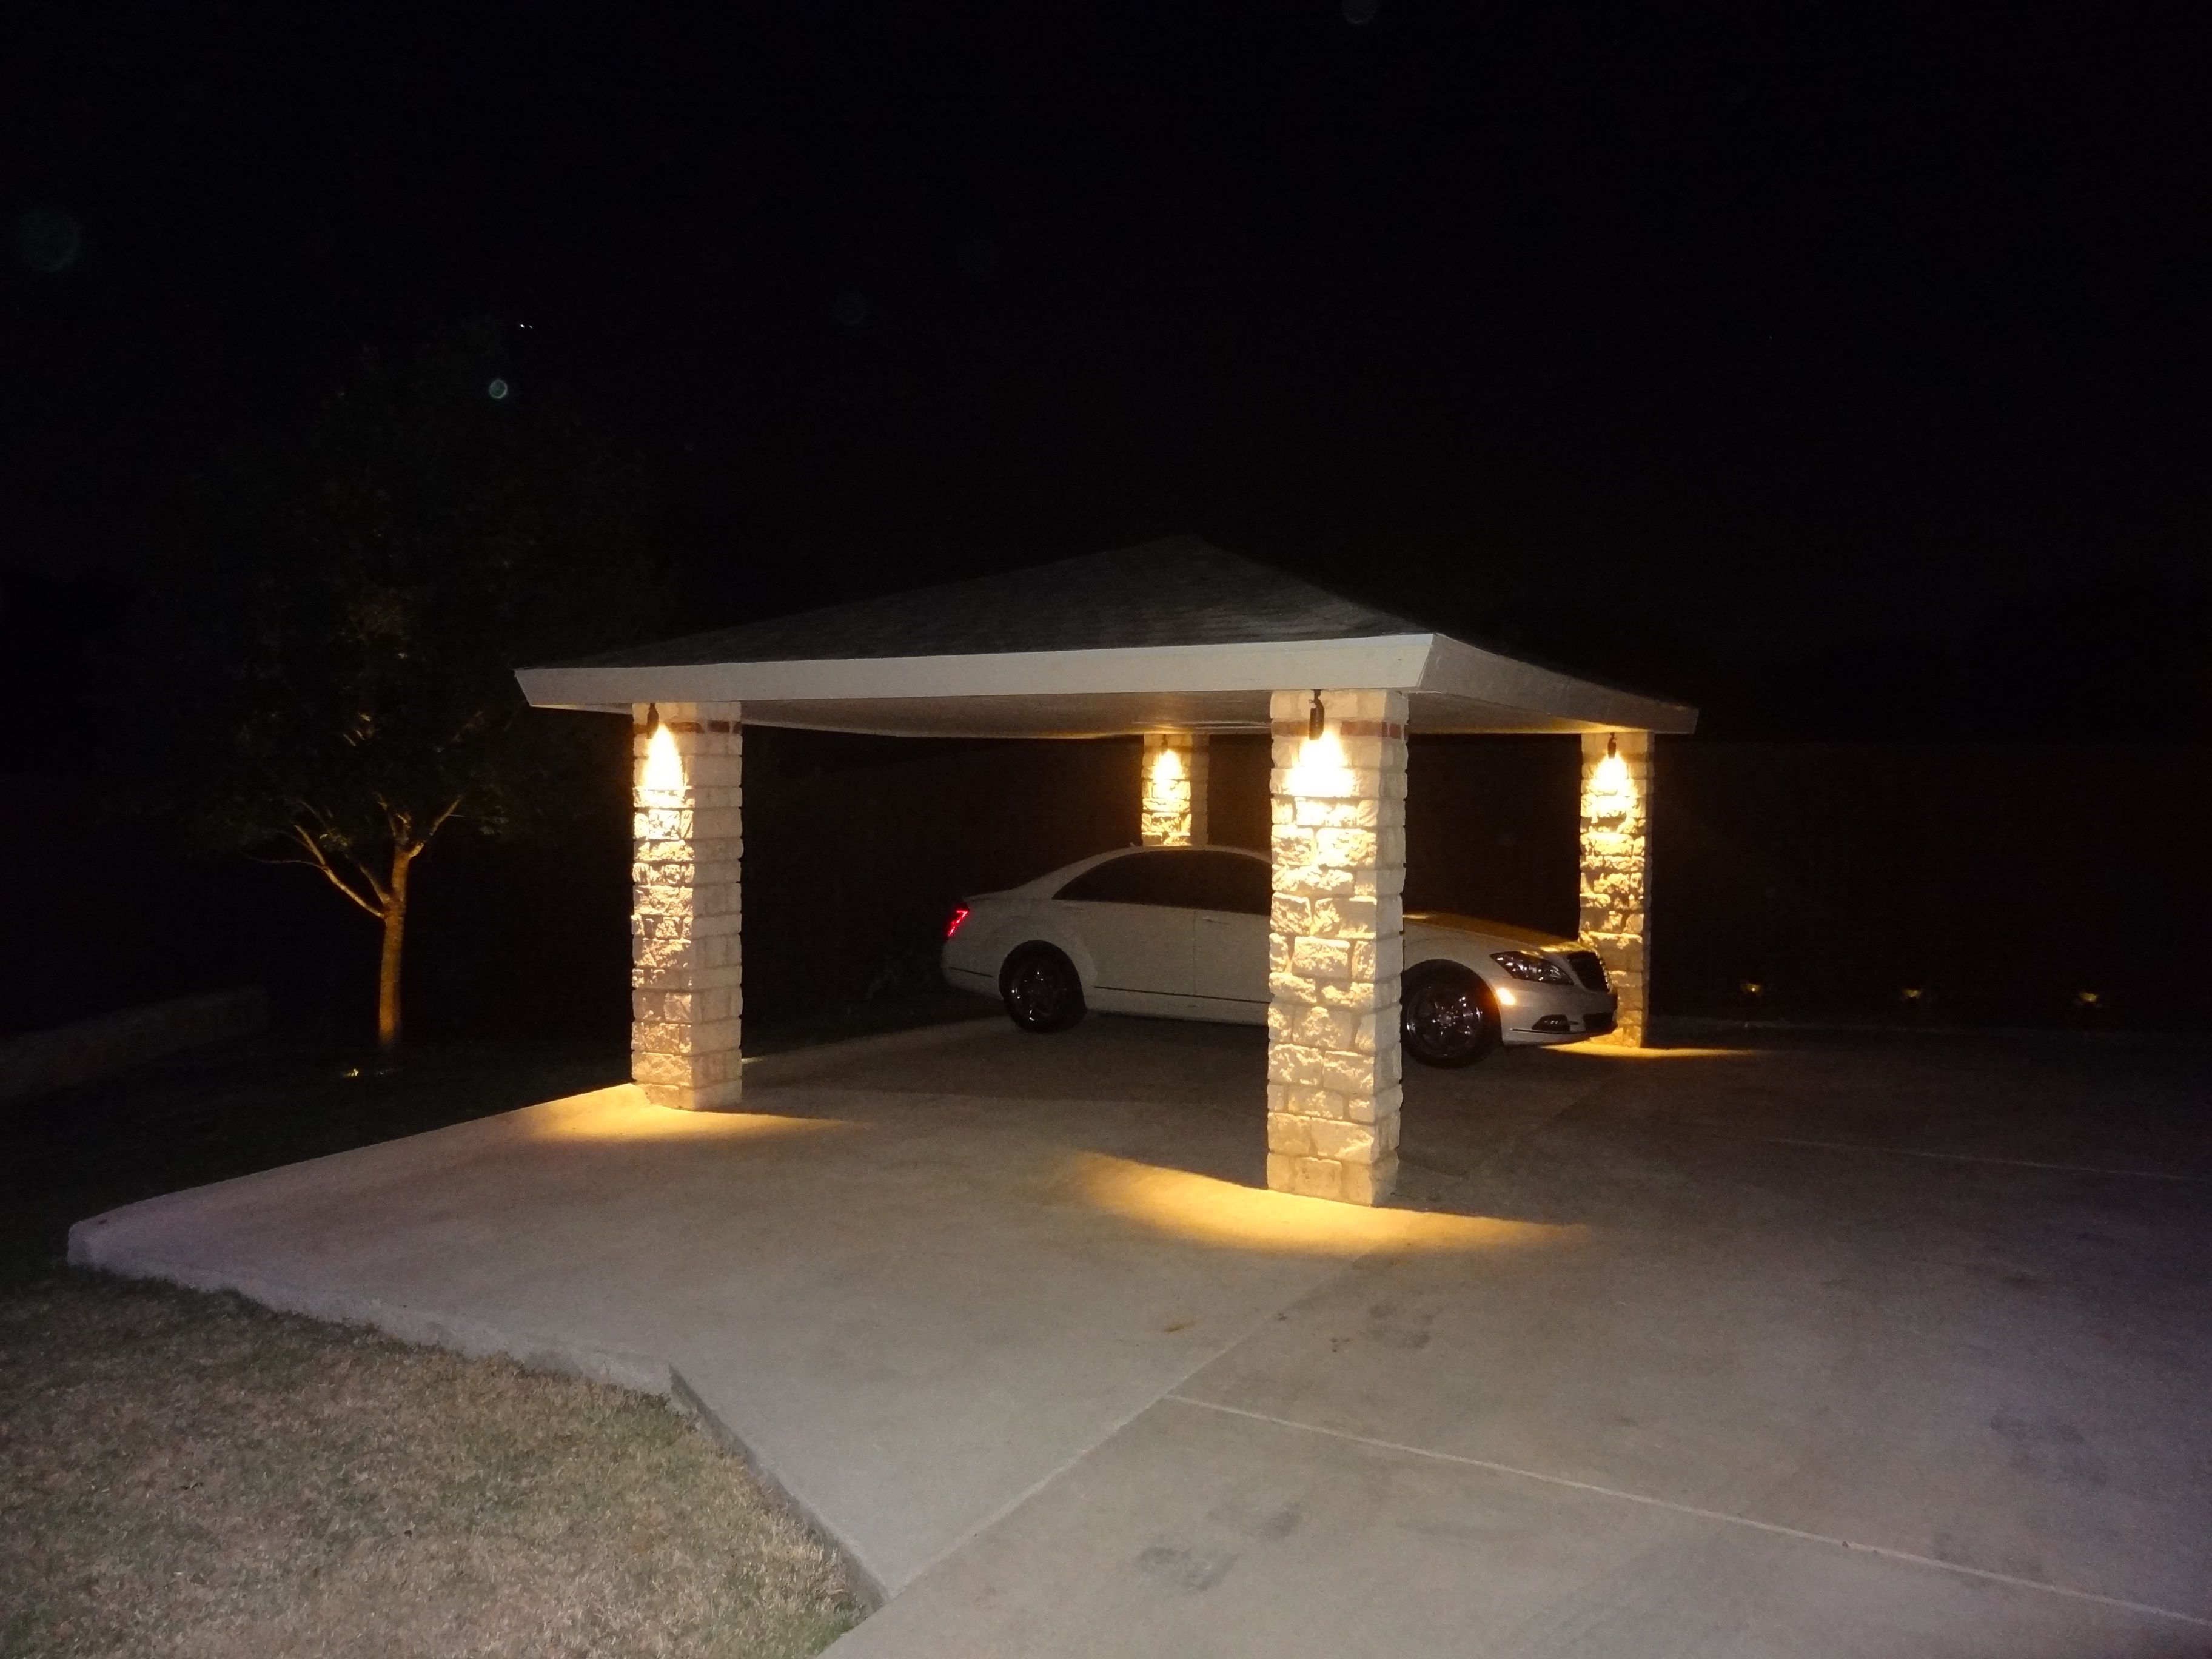 Carport led lighting arriving home at night one of nite fx carport led lighting arriving home at night one of nite fx lightings resent customer is now greeted by the welcome sight of his carport led exterior mozeypictures Images